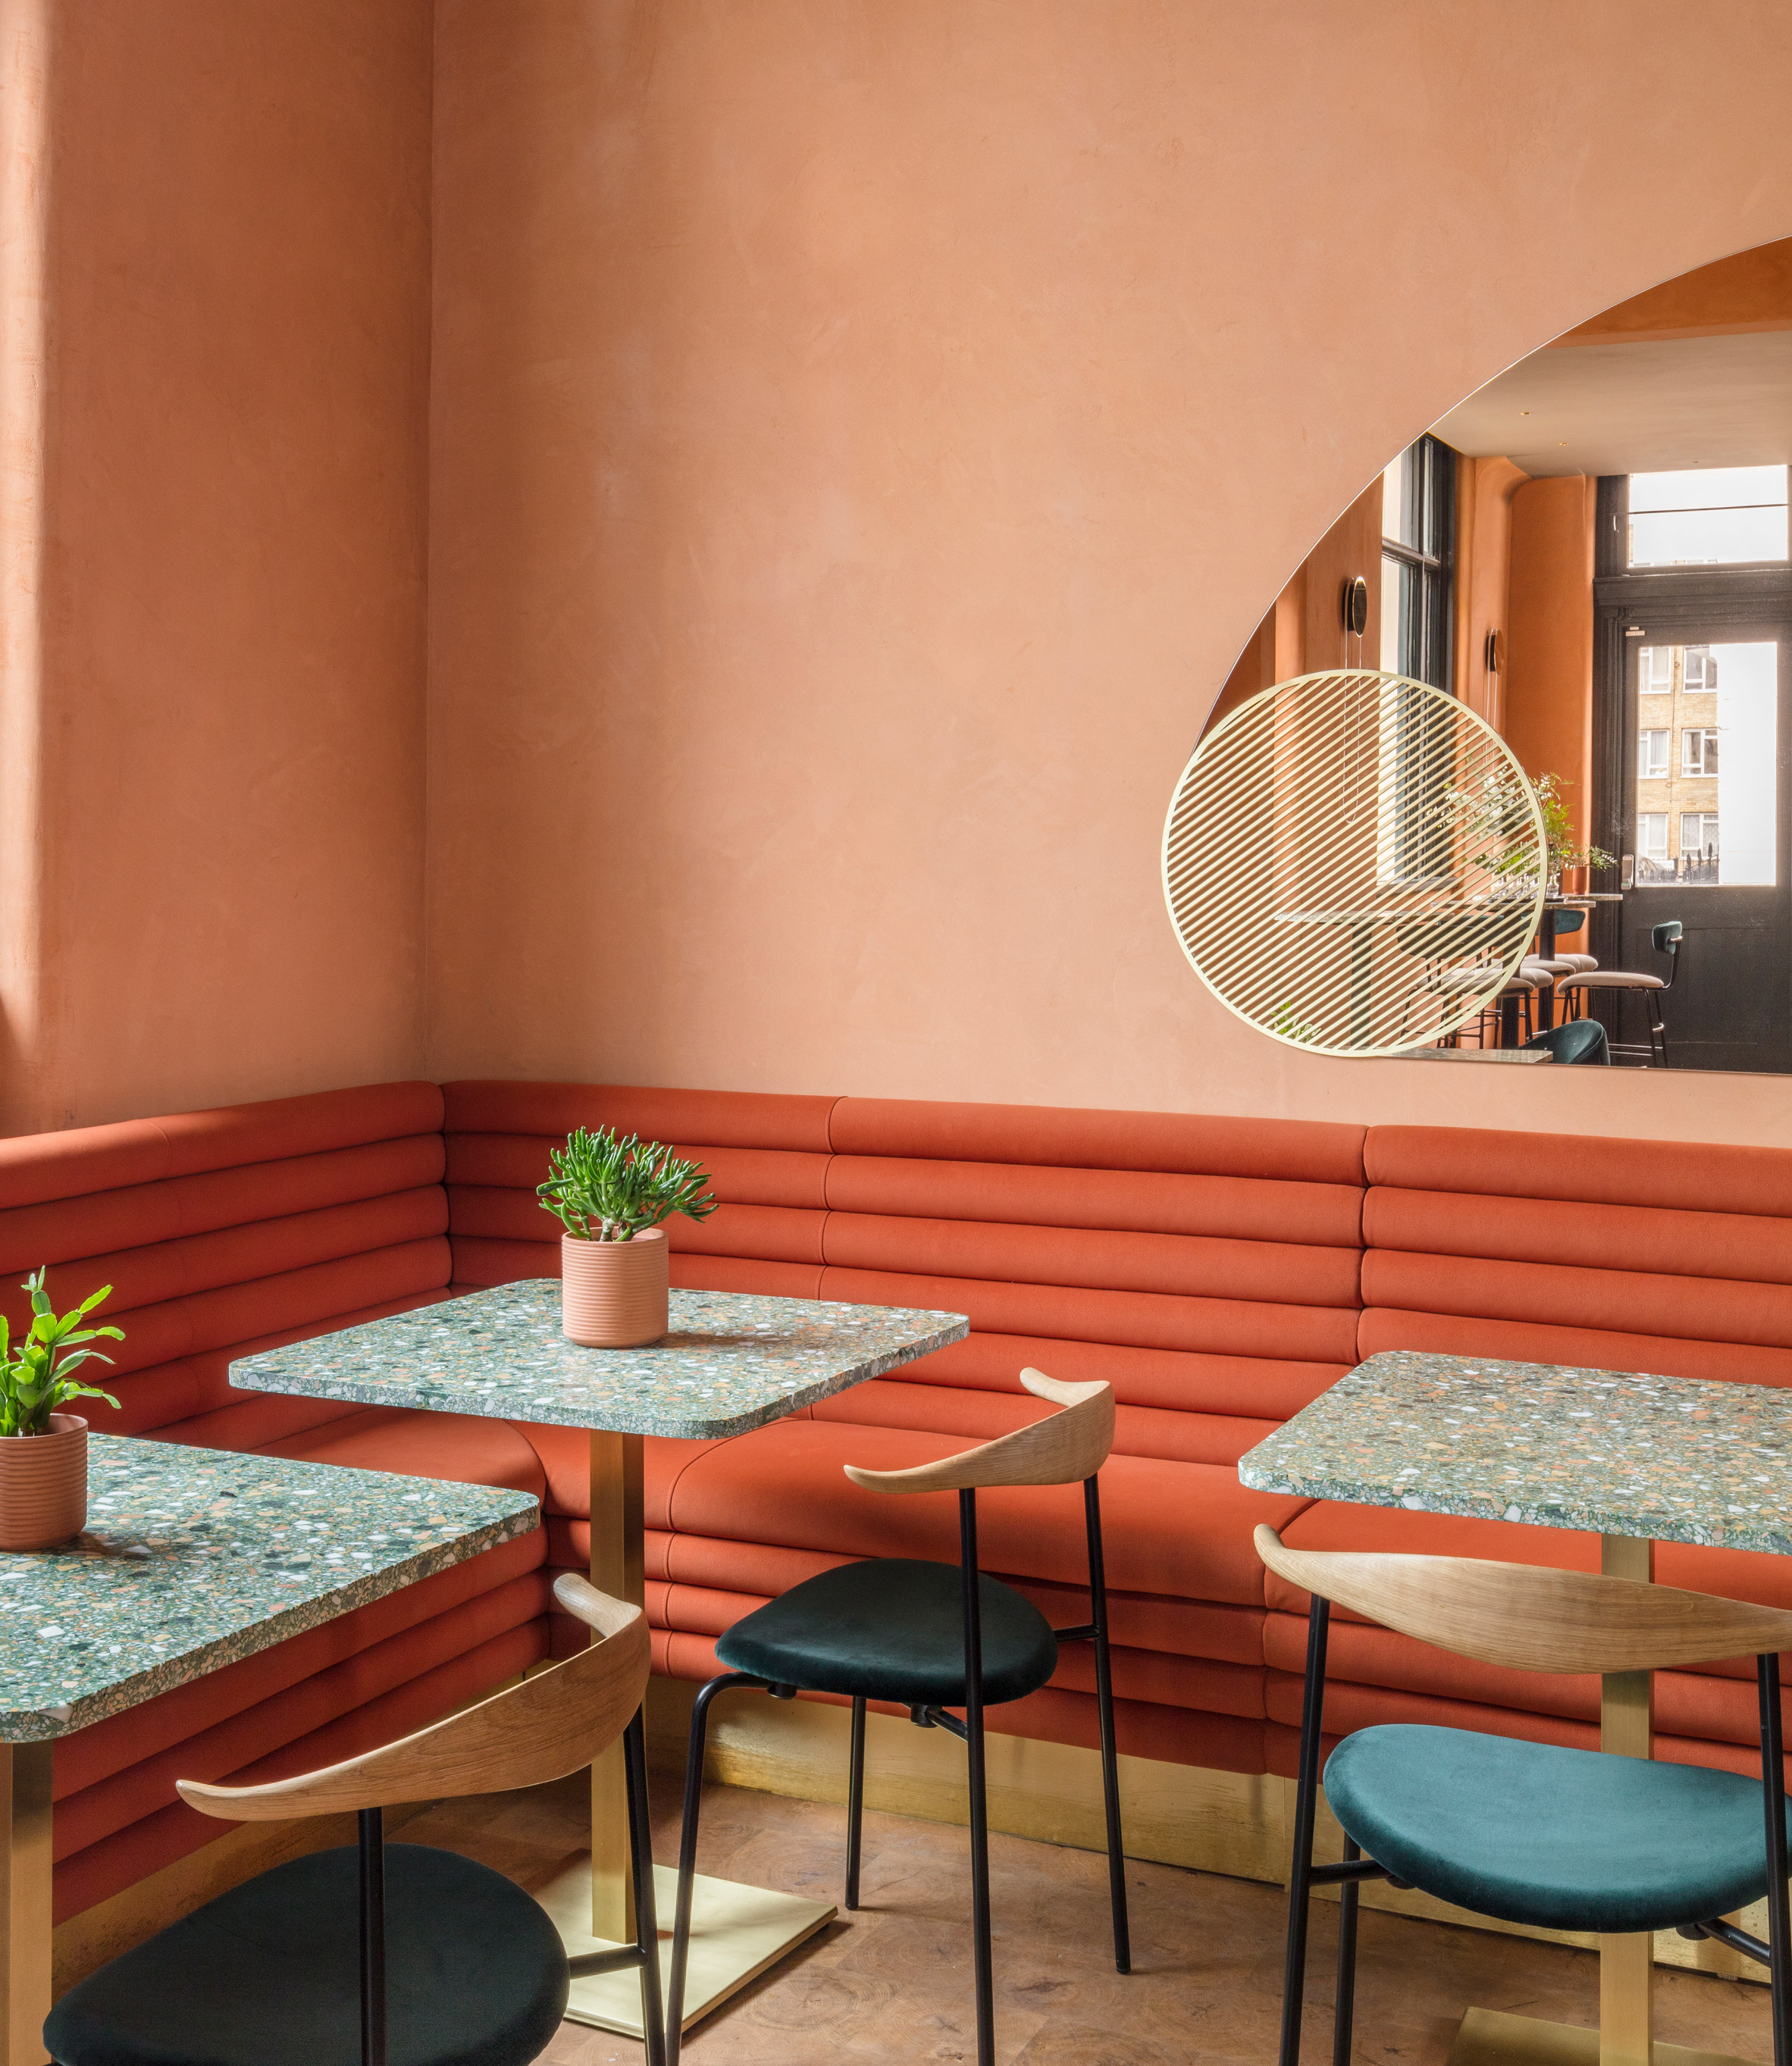 omars-place-sella-concept-interiors-restaurants-uk-london_dezeen_2364_col_4.jpg